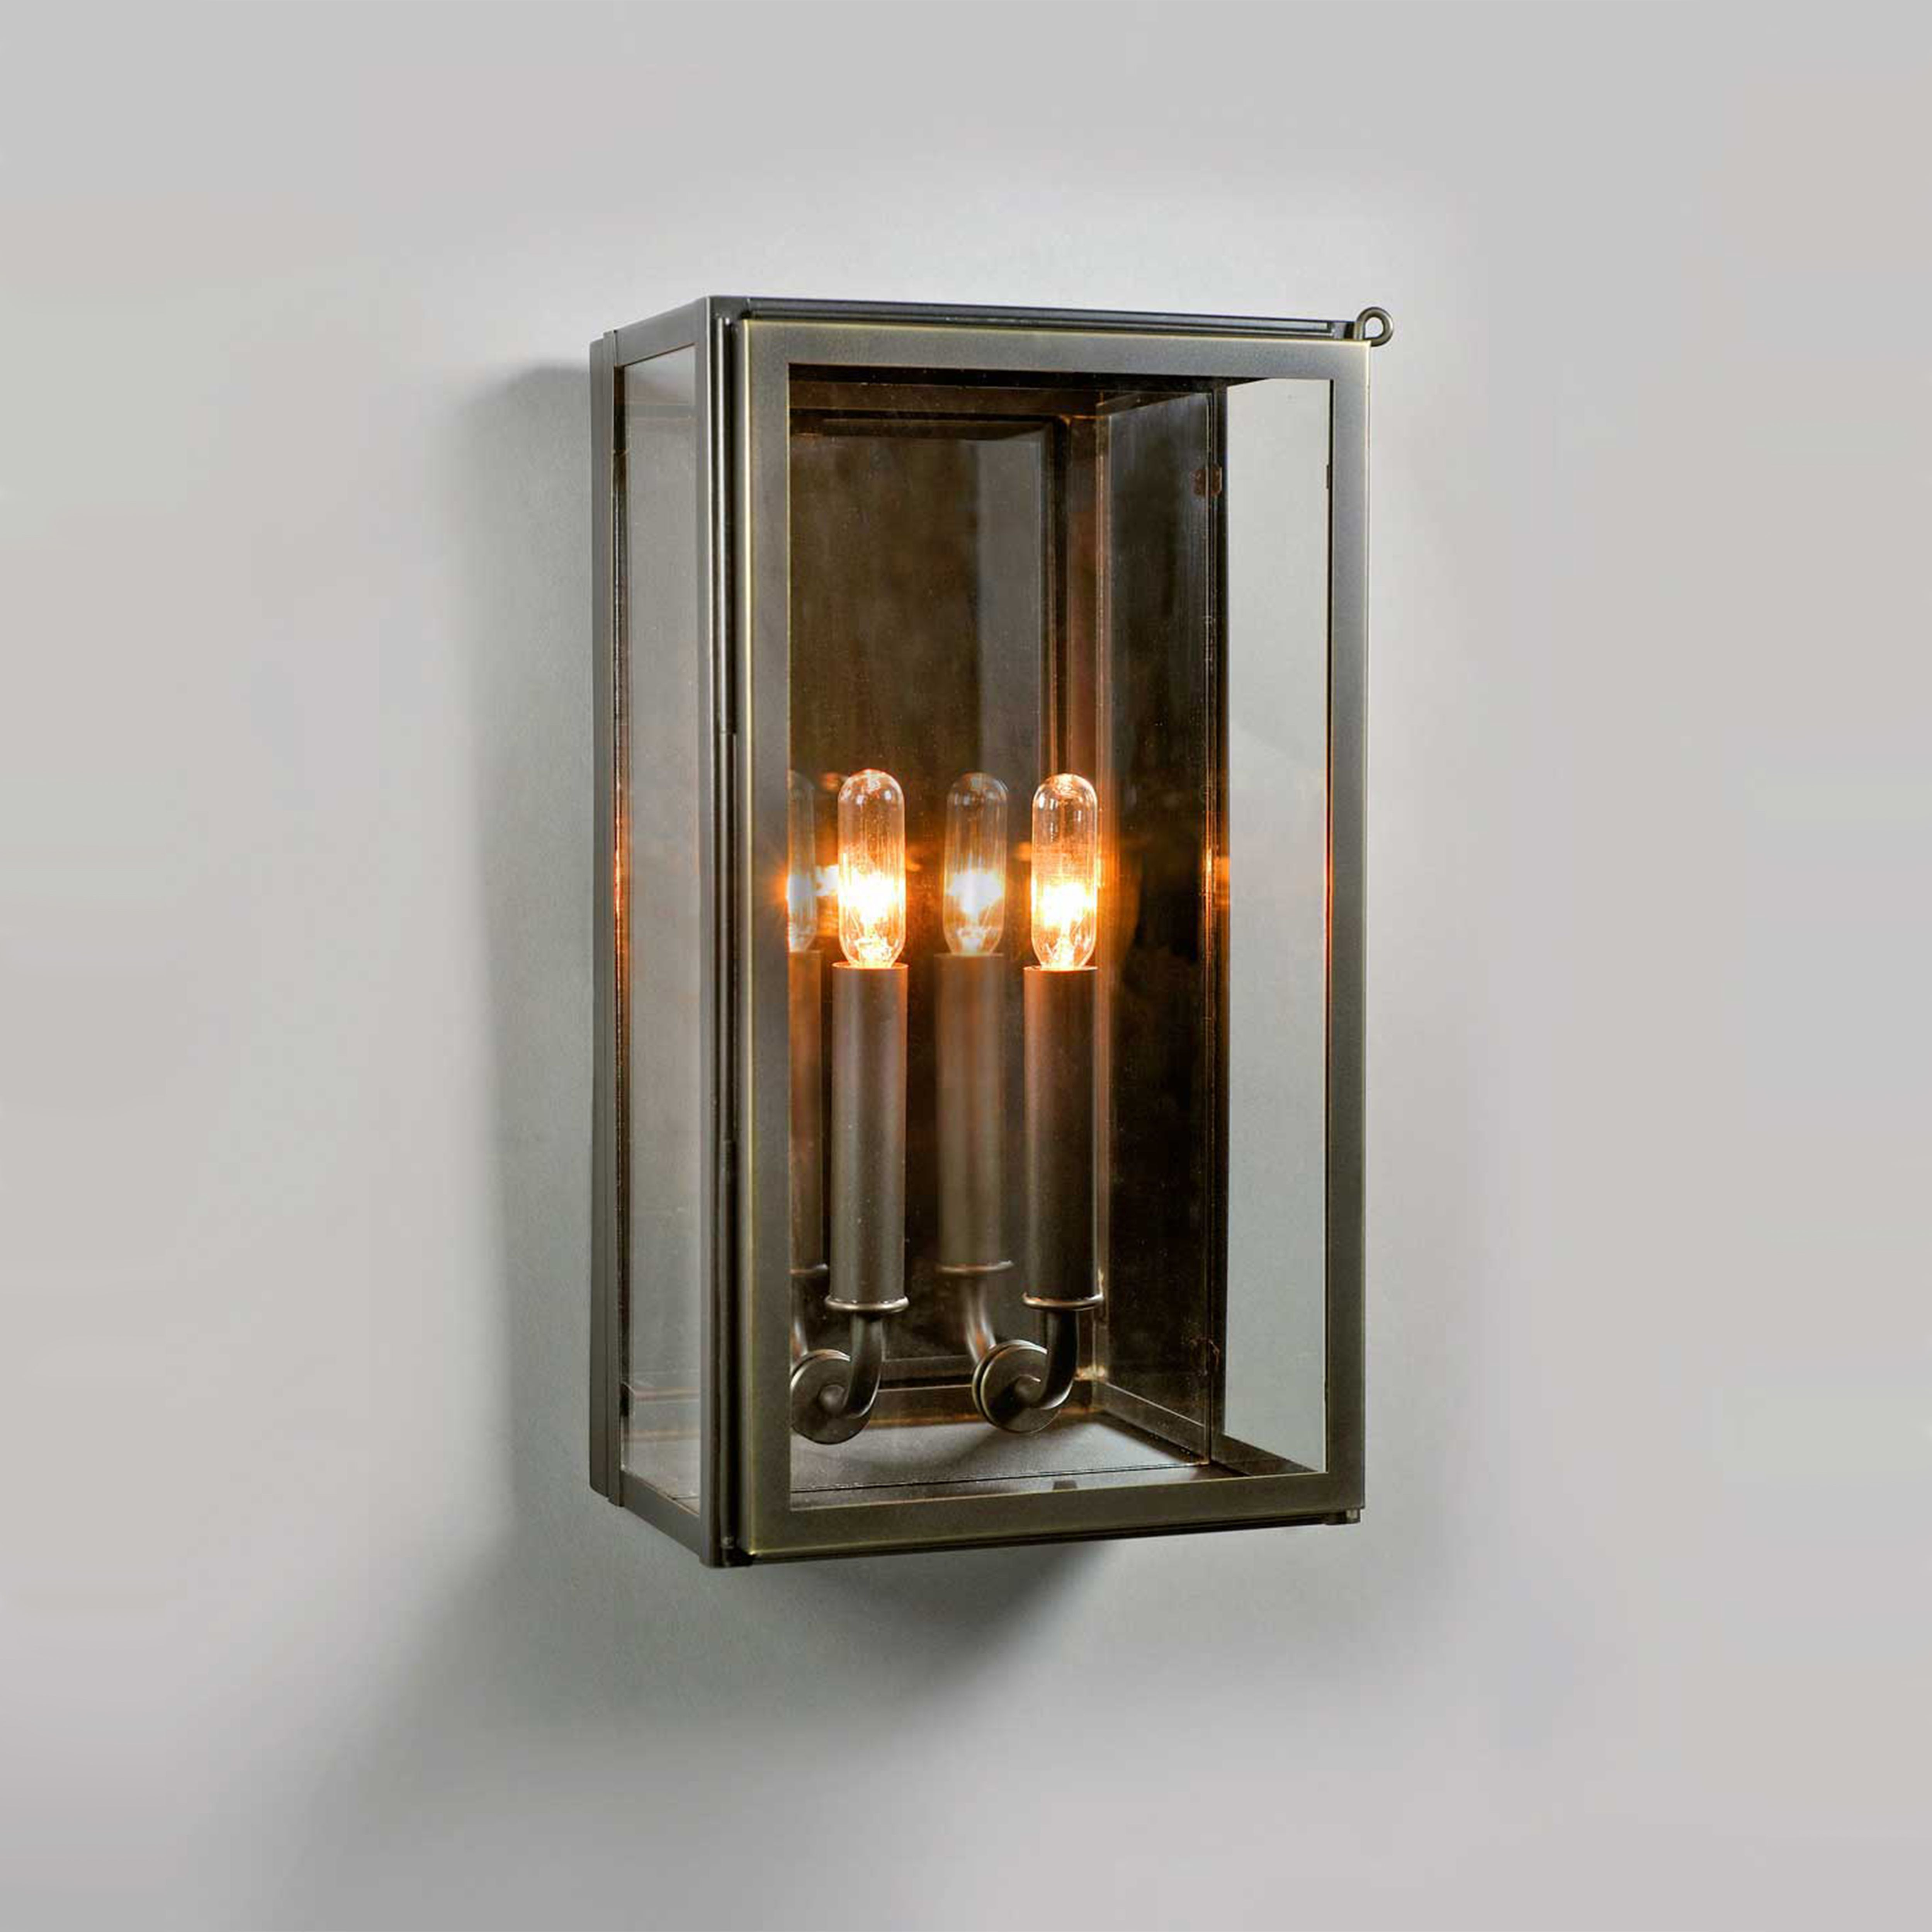 The Urban Electric Company S Vic Lantern Shown In Bronze With